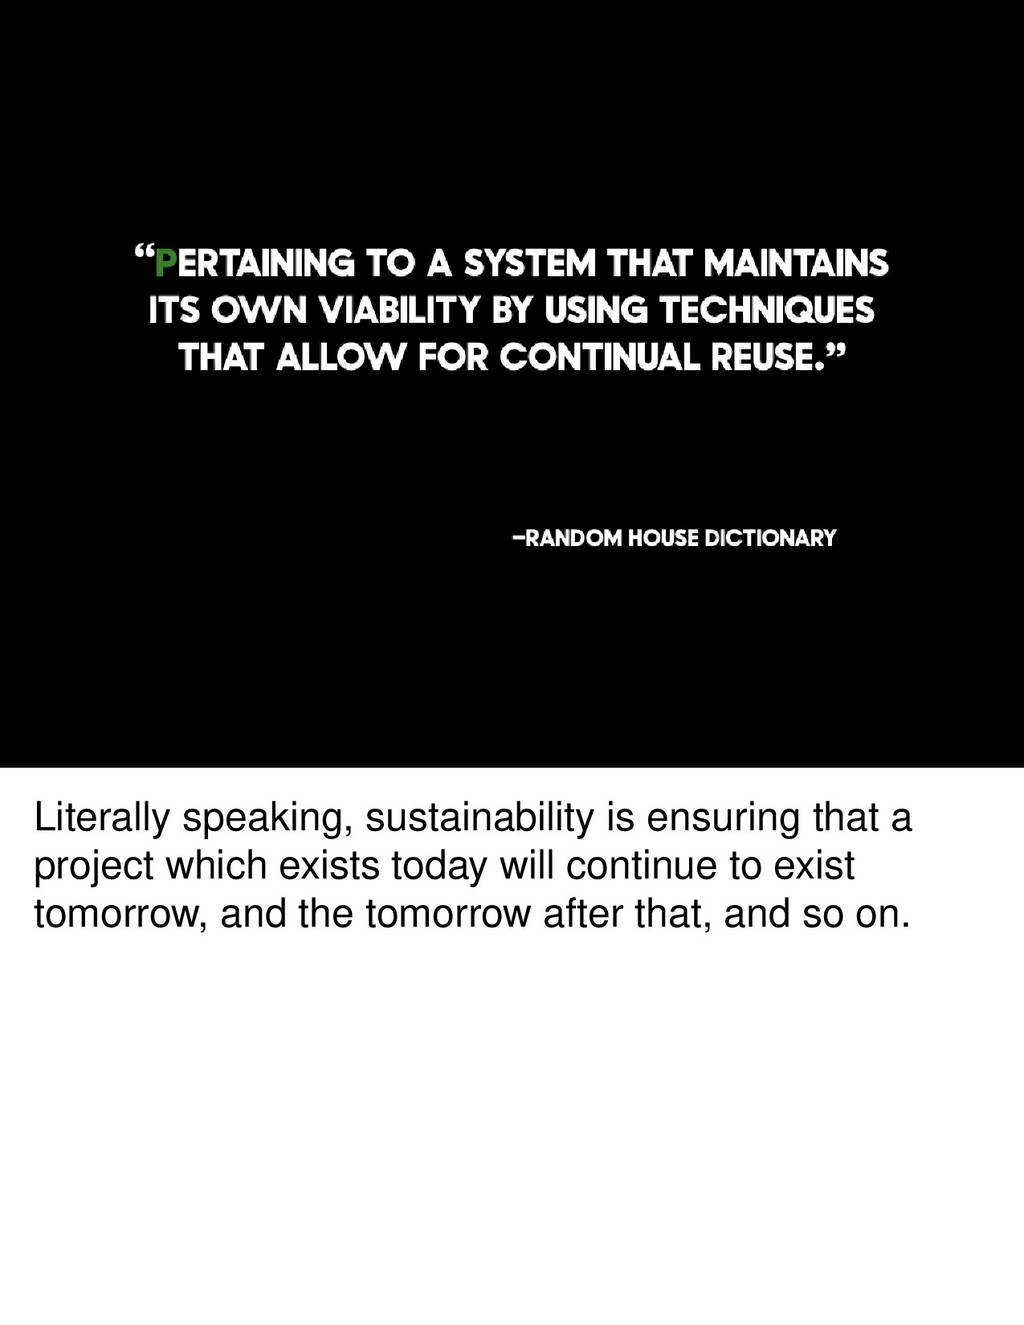 Literally speaking, sustainability is ensuring ...